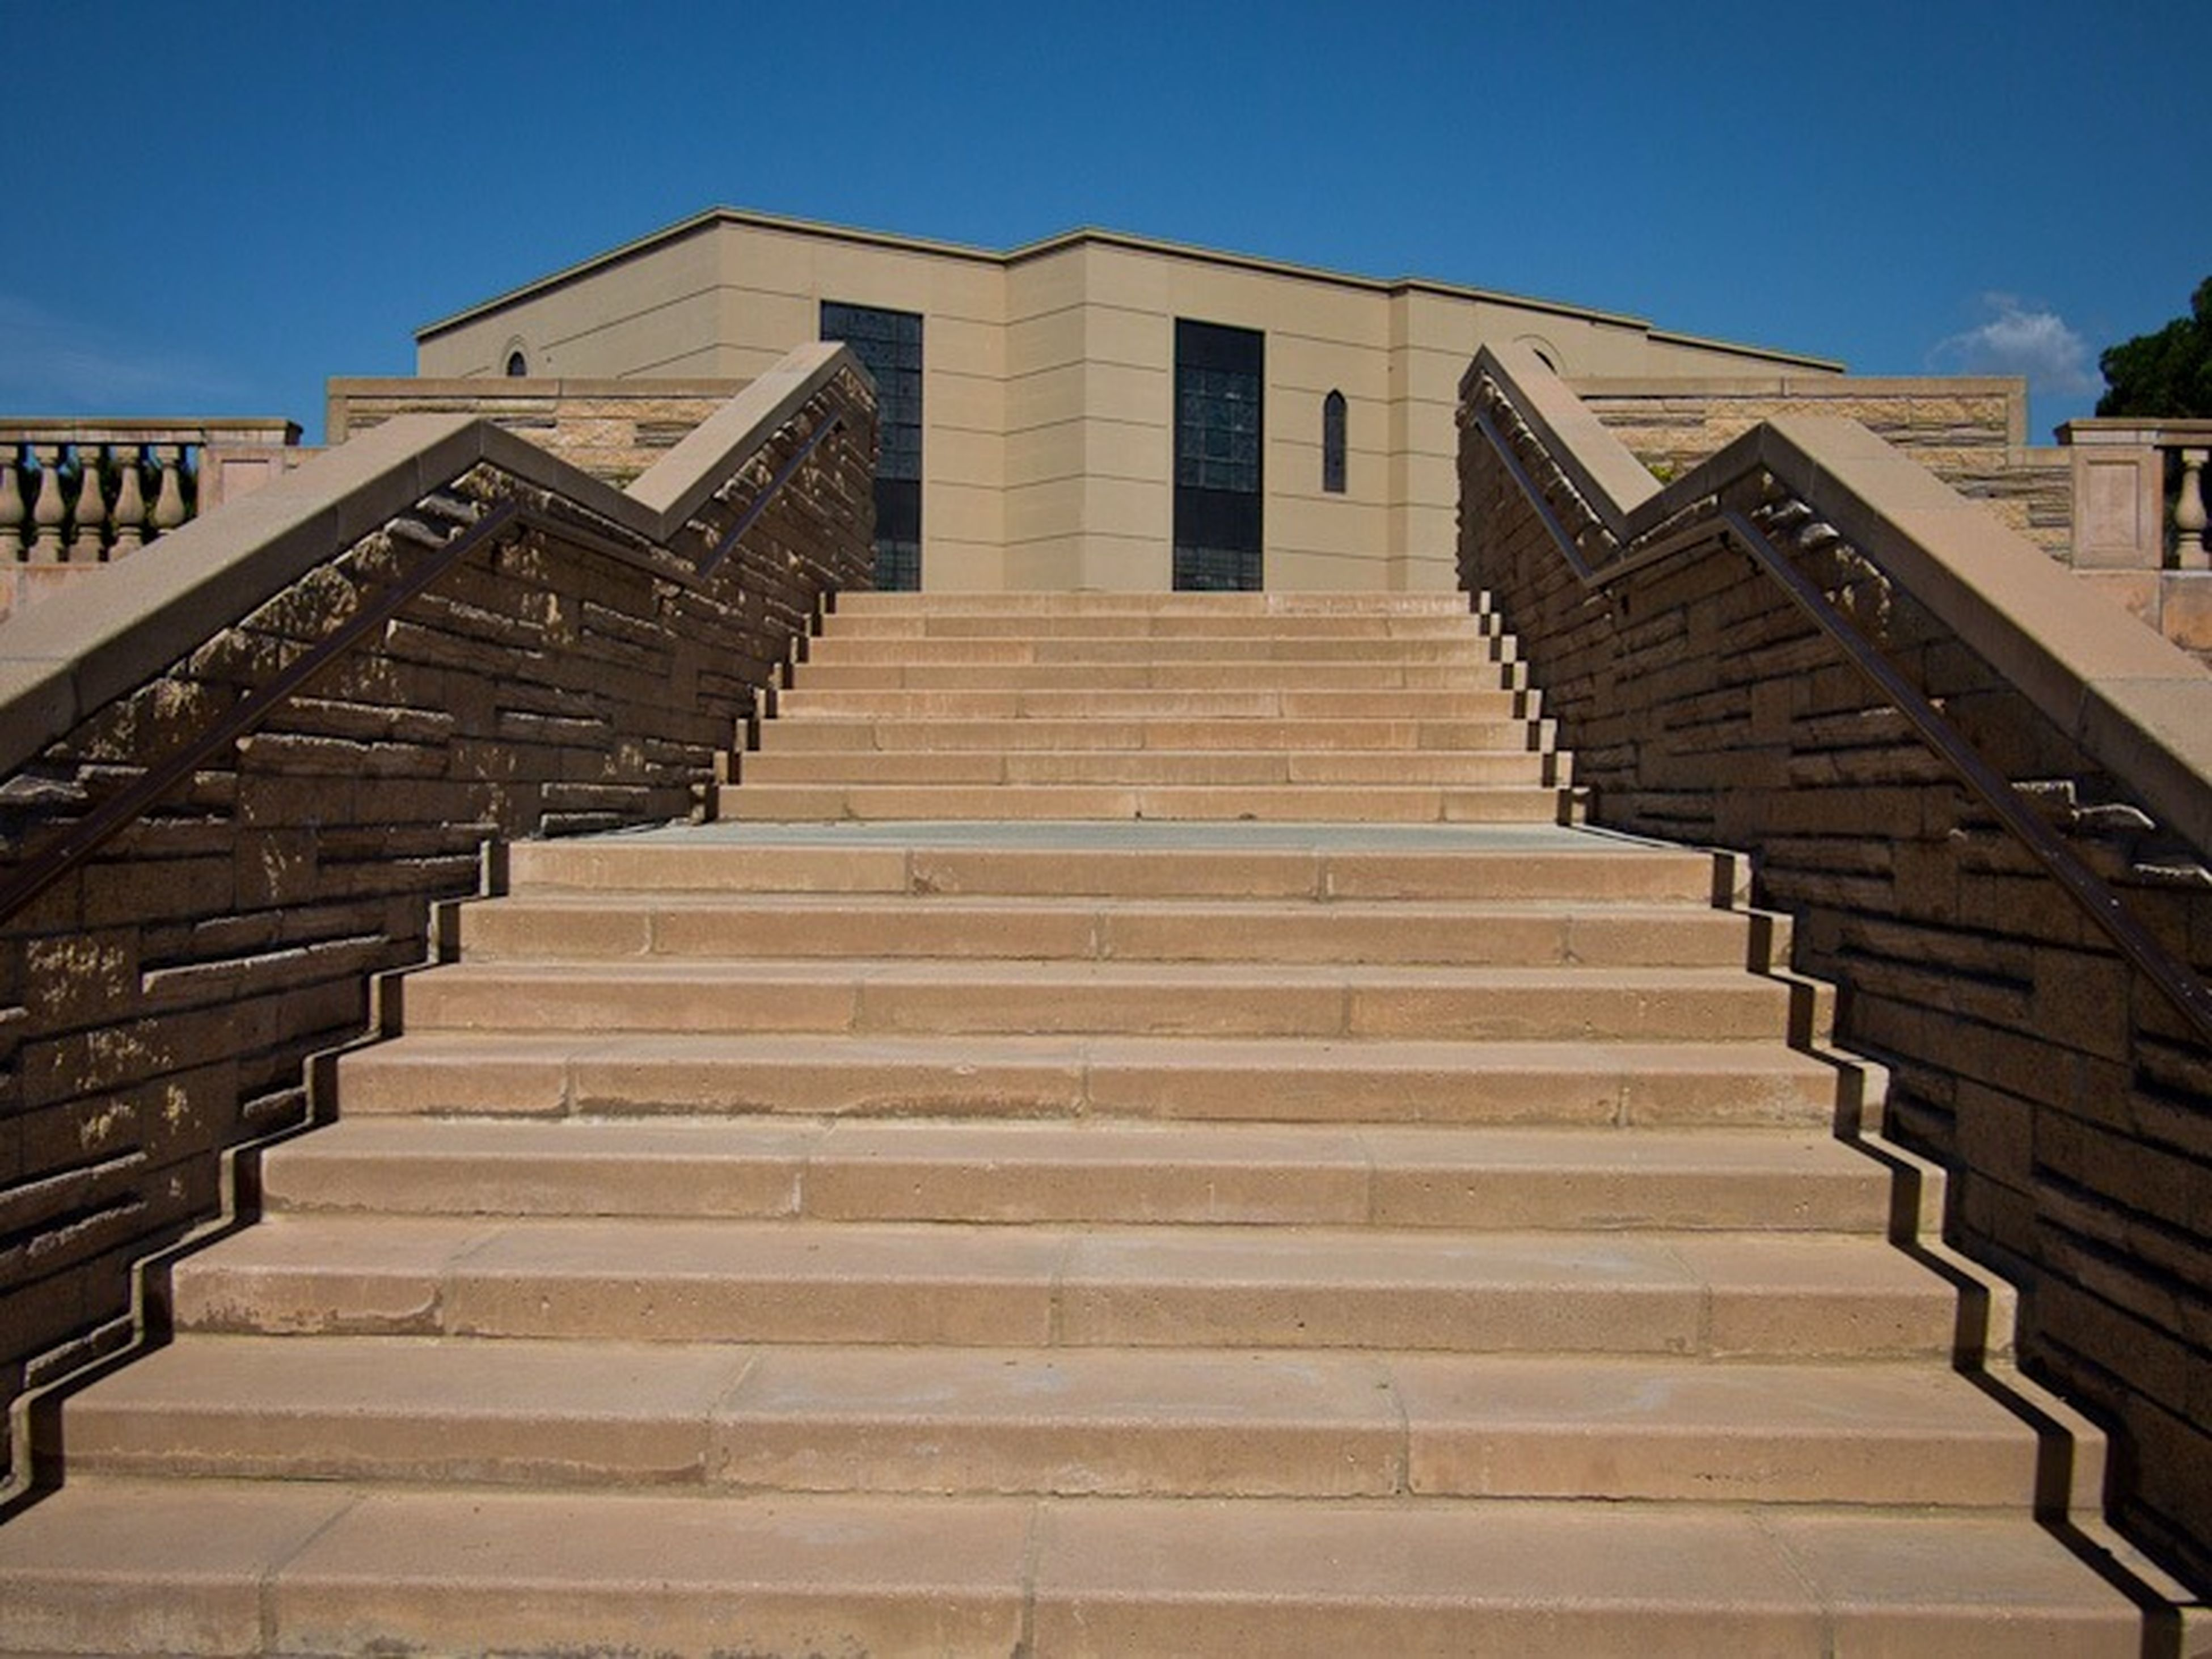 architecture, building exterior, built structure, steps, low angle view, steps and staircases, staircase, clear sky, railing, building, stairs, sunlight, sky, day, blue, residential structure, outdoors, no people, residential building, house